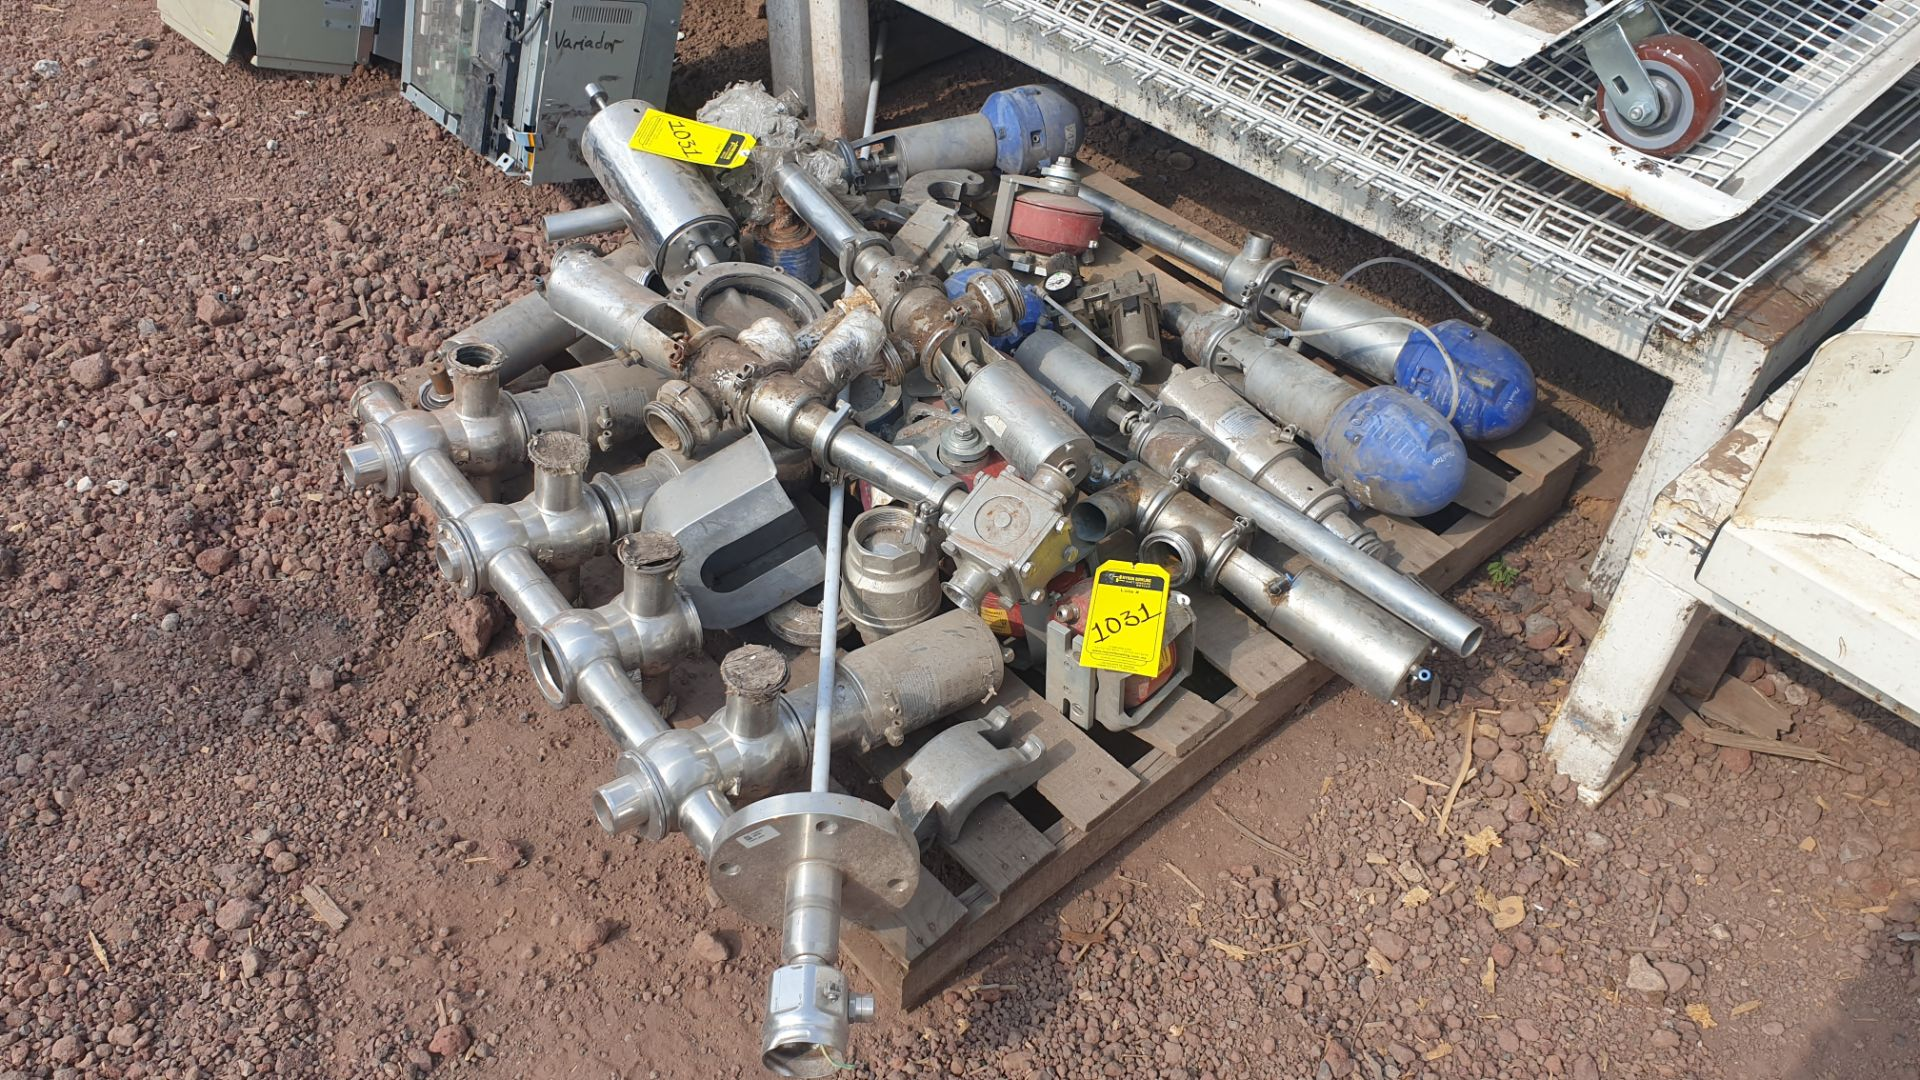 Lot of spare parts, valves, volumetric scales. Please inspect - Image 8 of 8